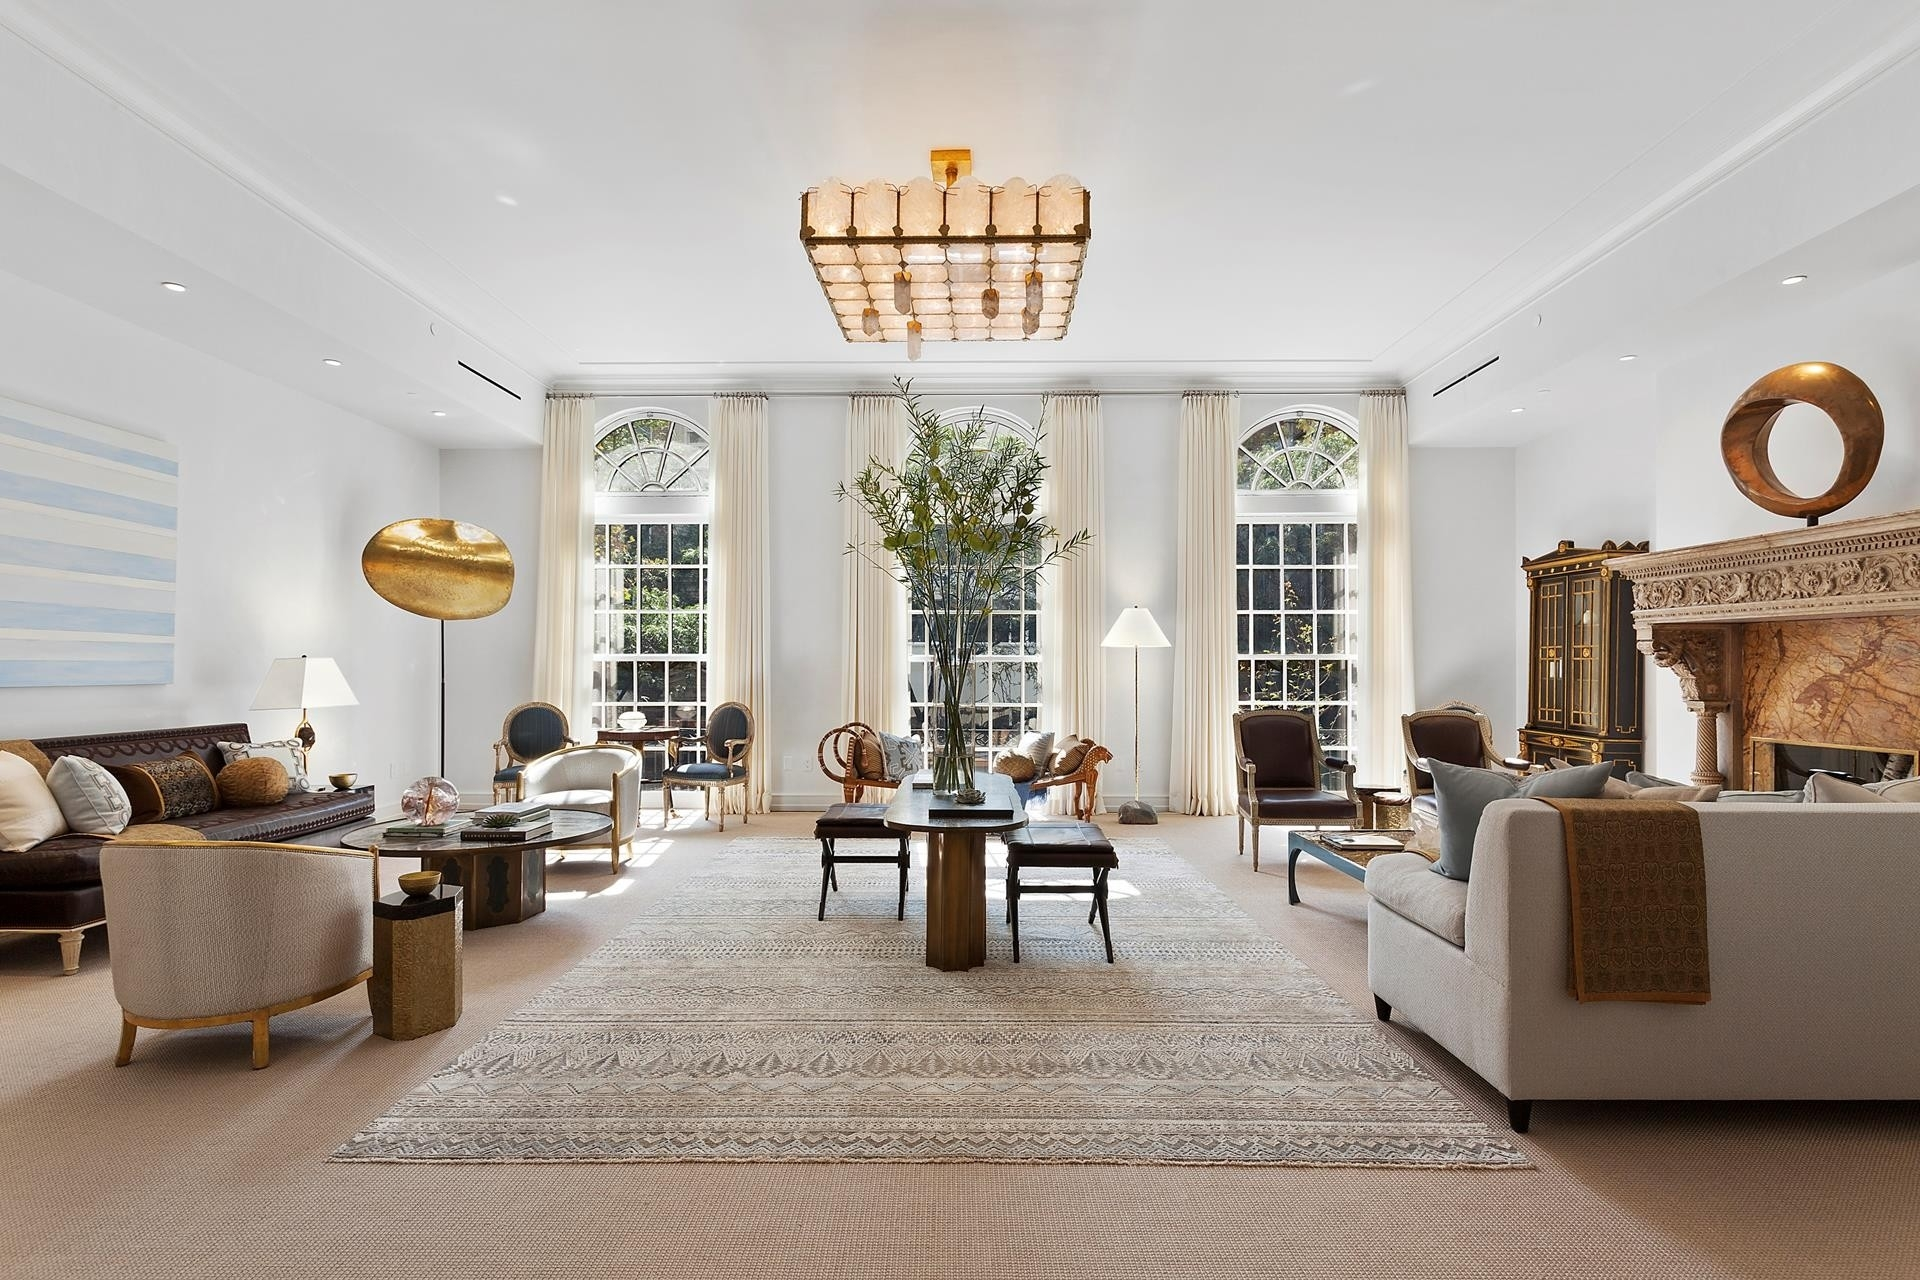 Condominium for Sale at 33 East 74th St, TH Lenox Hill, New York, NY 10021